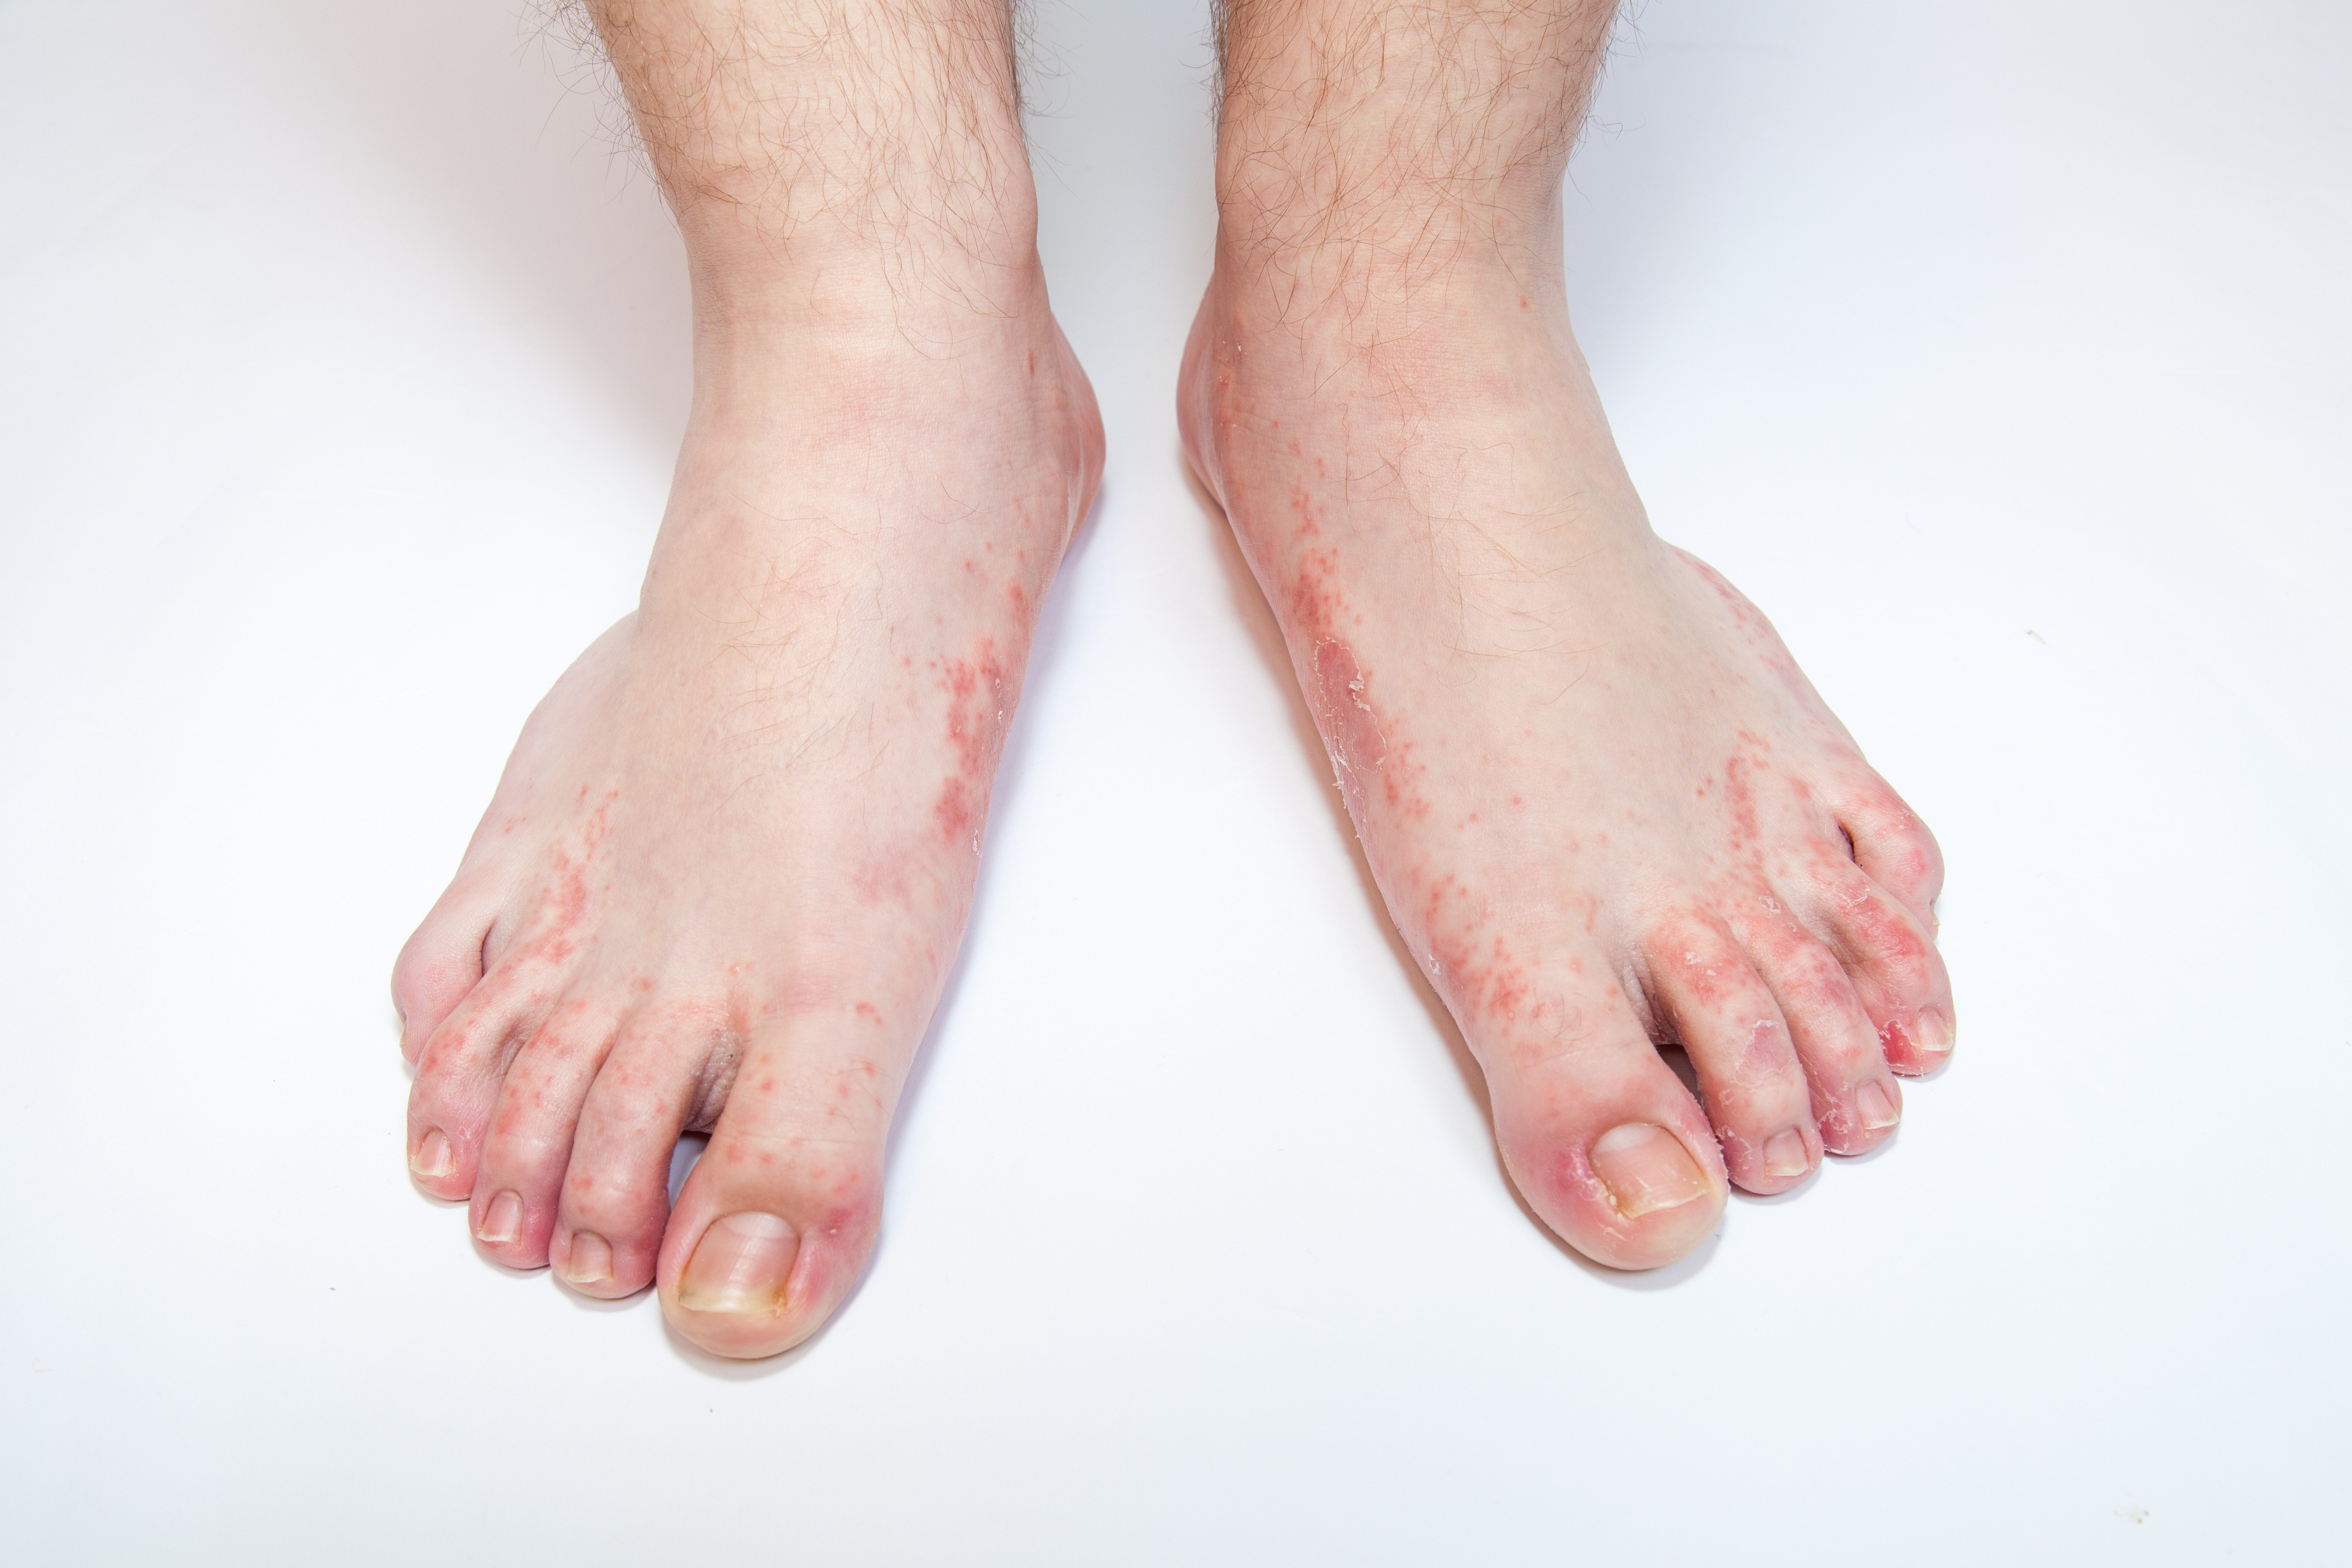 Cracks in the fingers and toes: causes 84